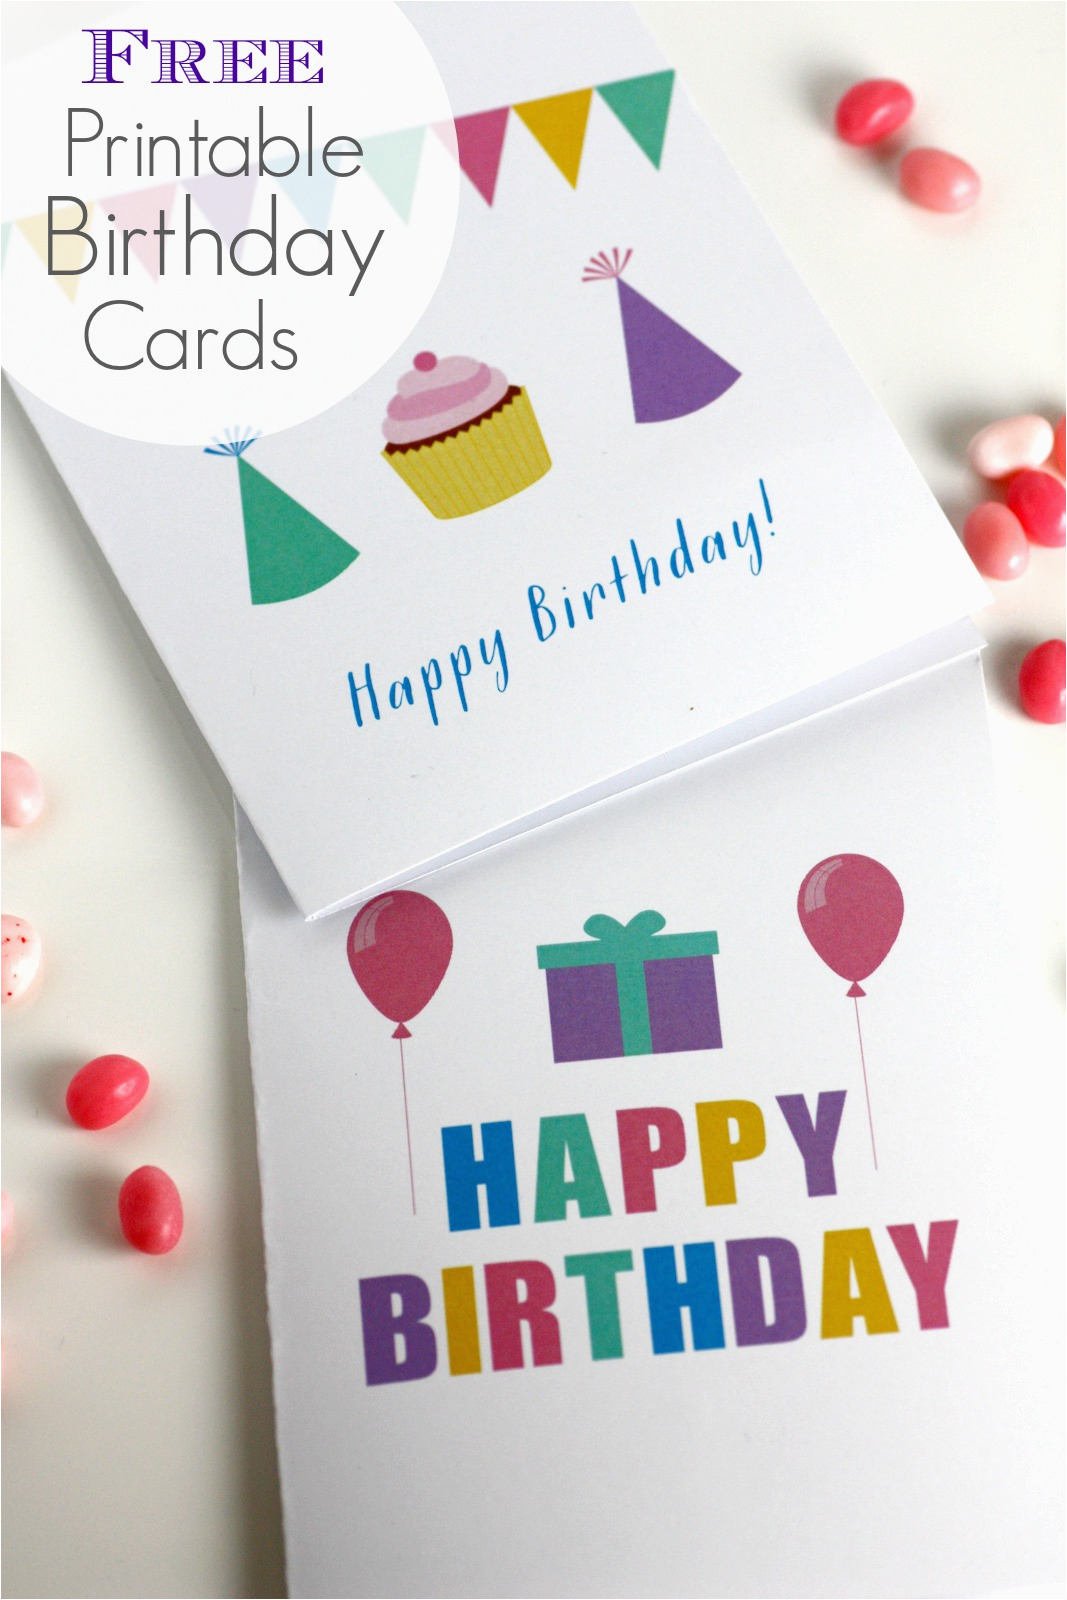 graphic regarding Printable Birthday Cards for Him titled Cost-free On the web Birthday Playing cards for Him Printable Birthday Playing cards